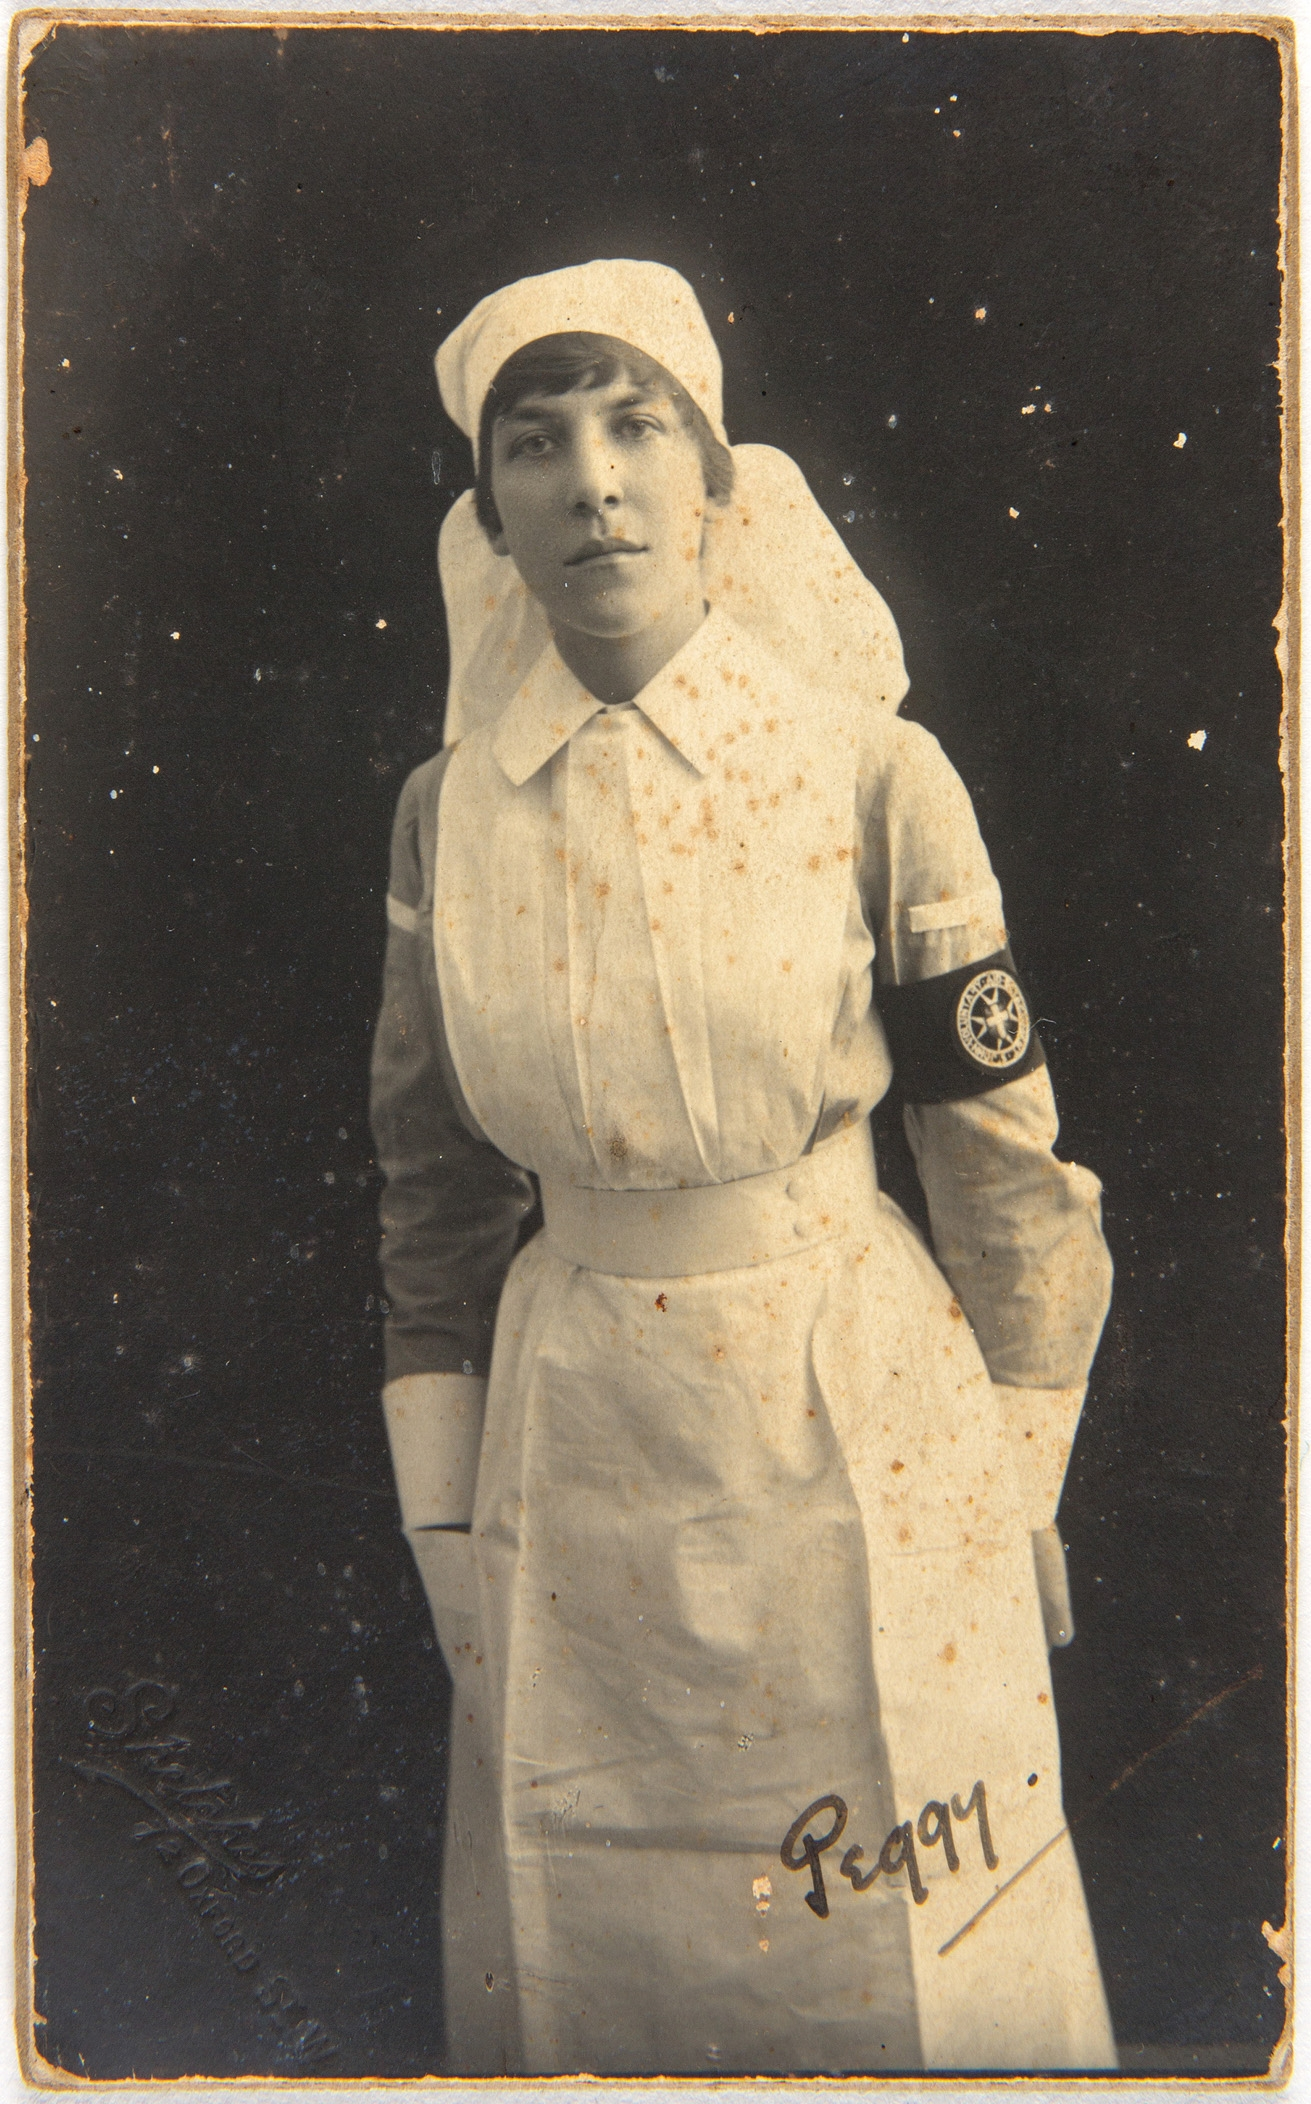 Black and white portrait of woman in nurse's uniform with armband, leaning forward.